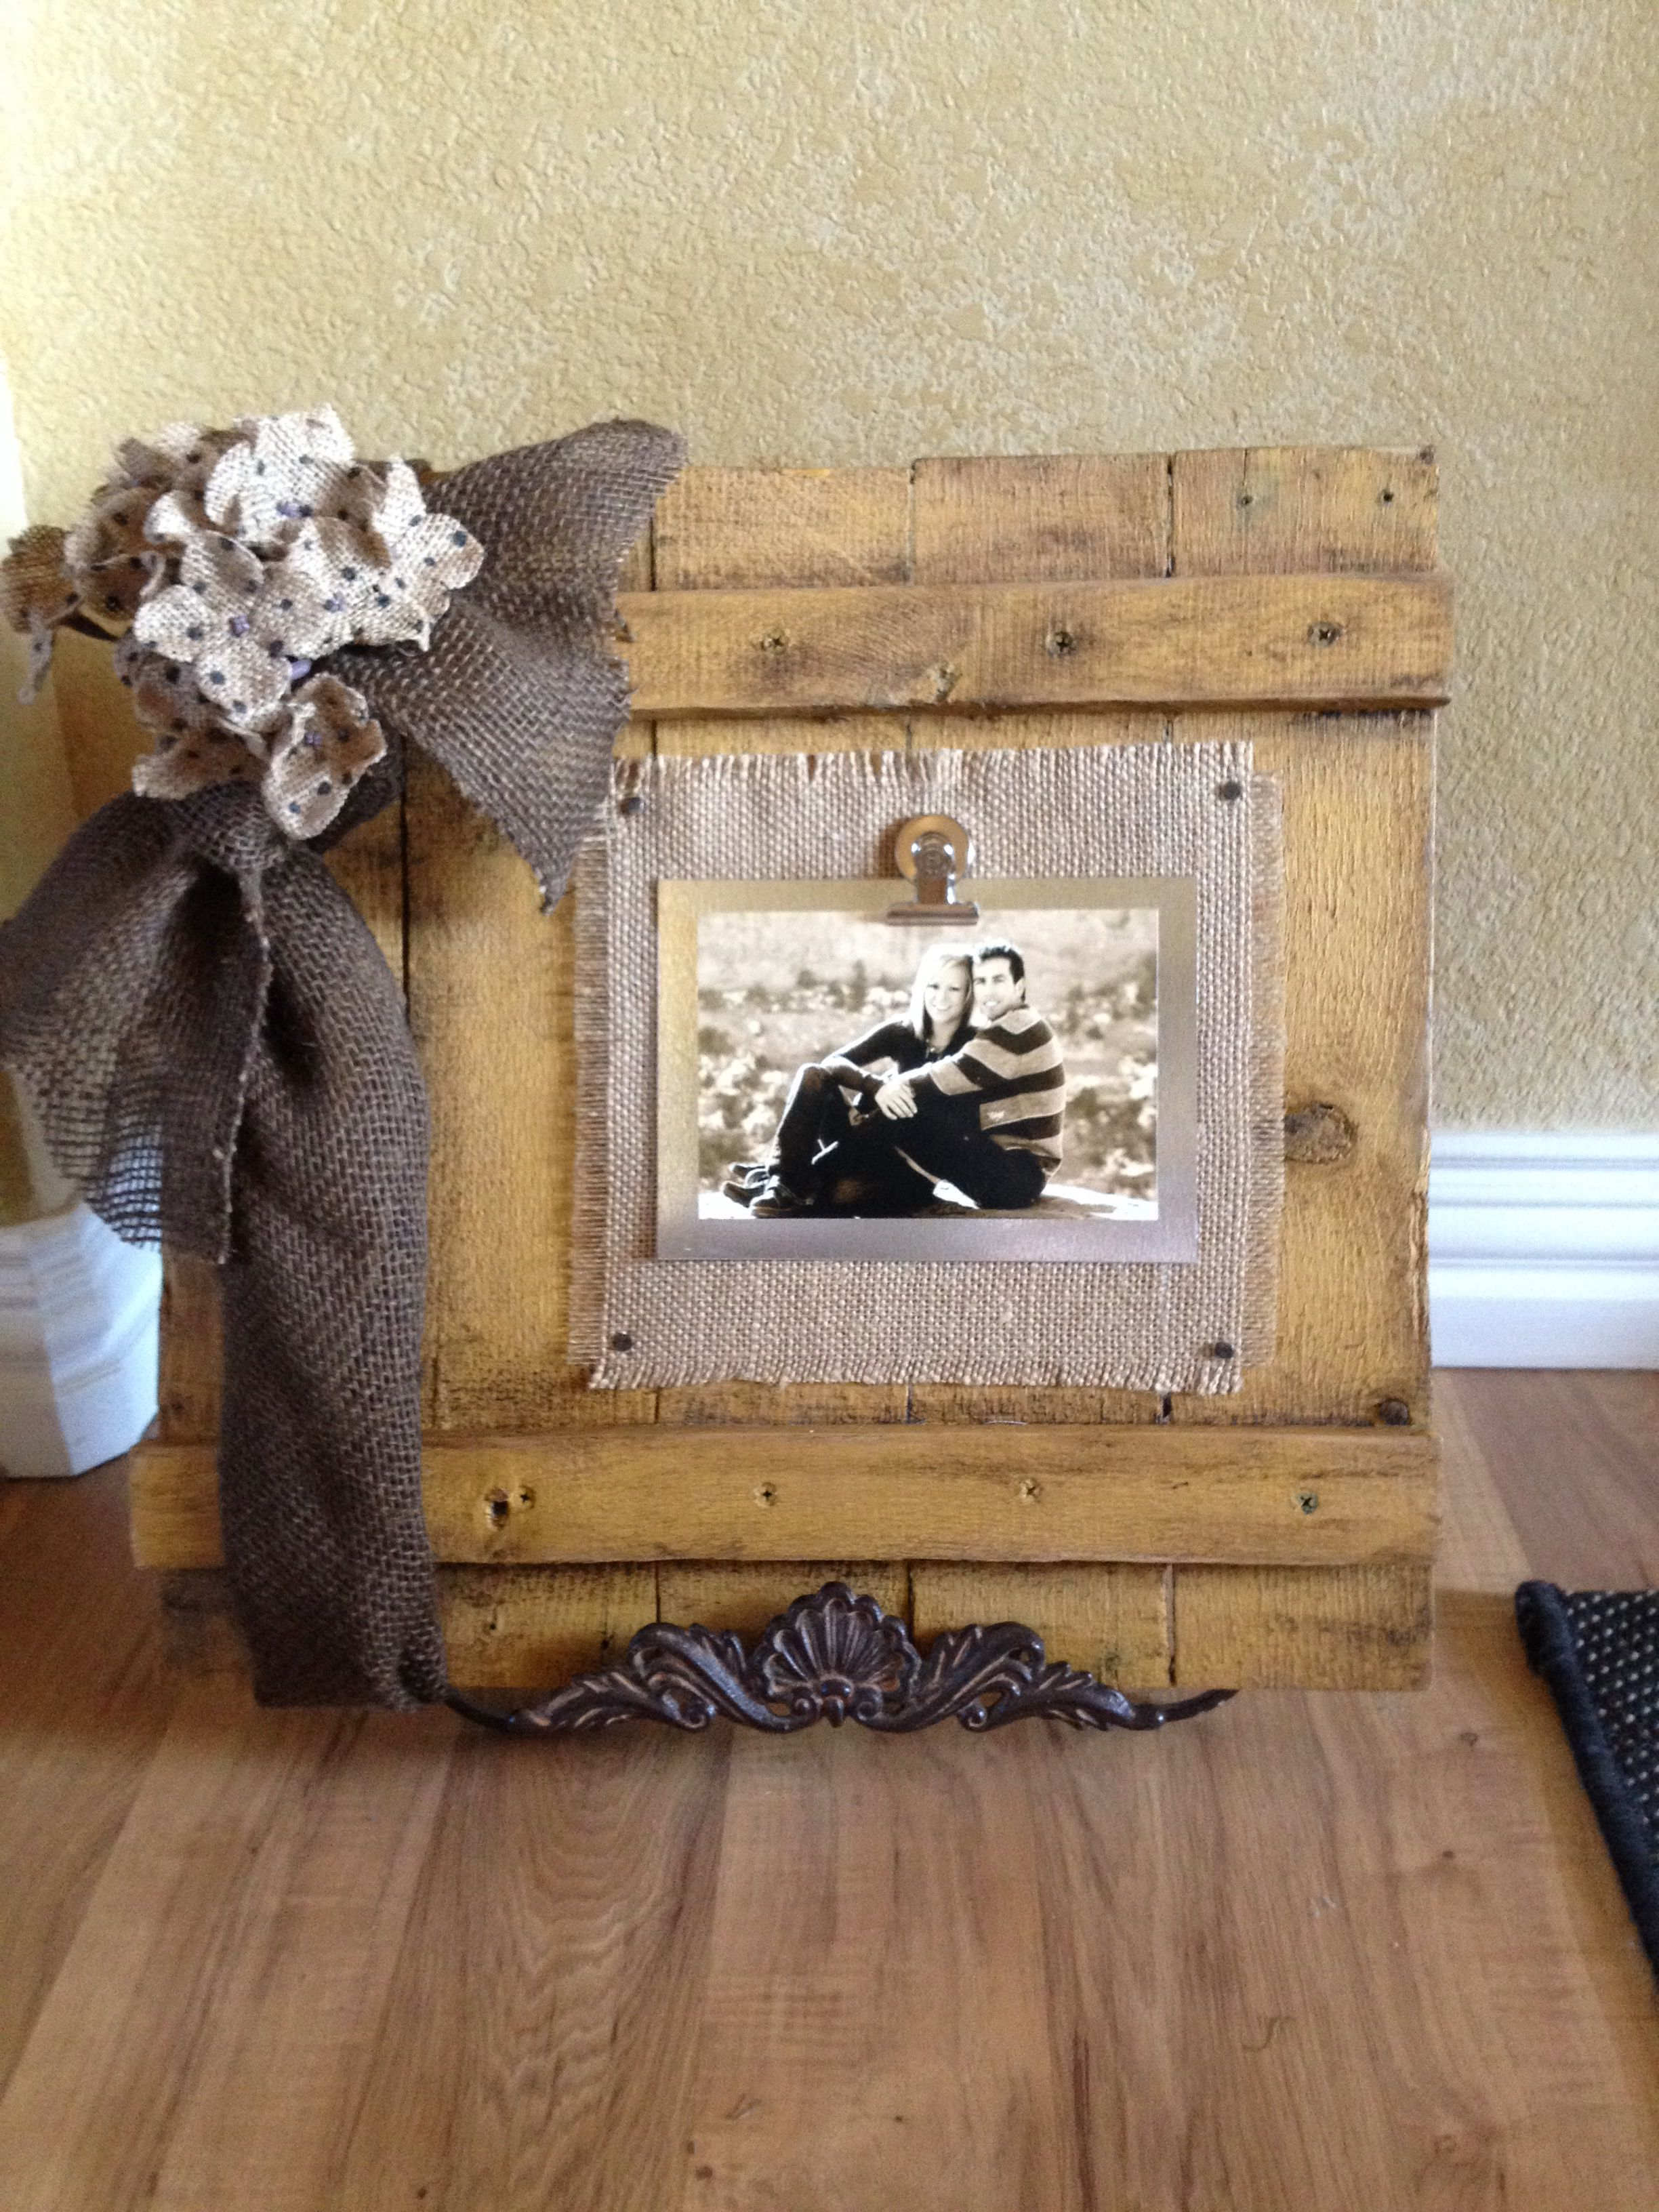 Marcos Para Cuadros Rusticos Pallet Frame With Burlap And Flashing Imagenes Palets Porta